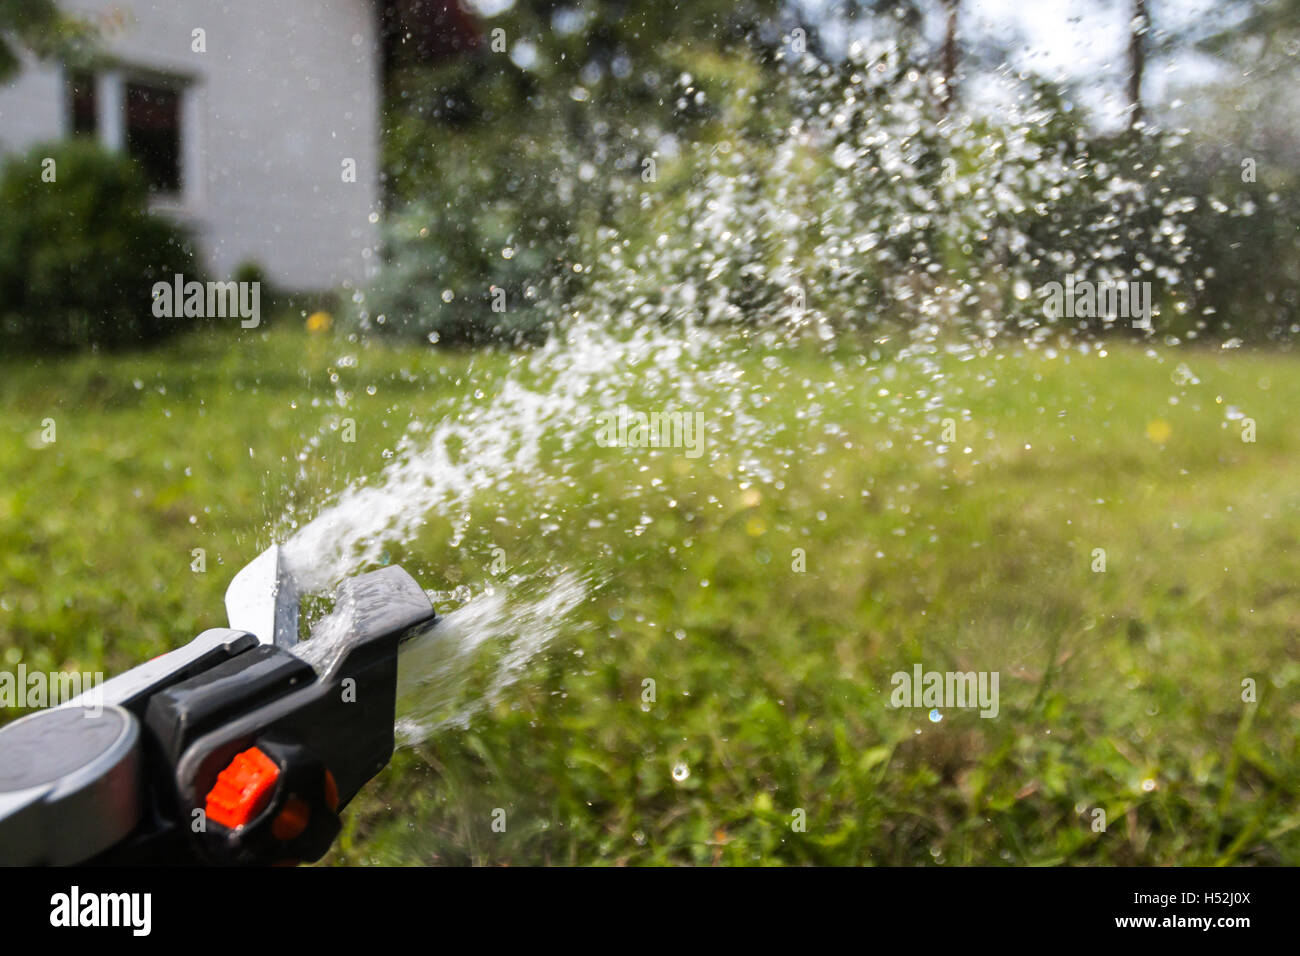 Water drops from sprinkler - Stock Image